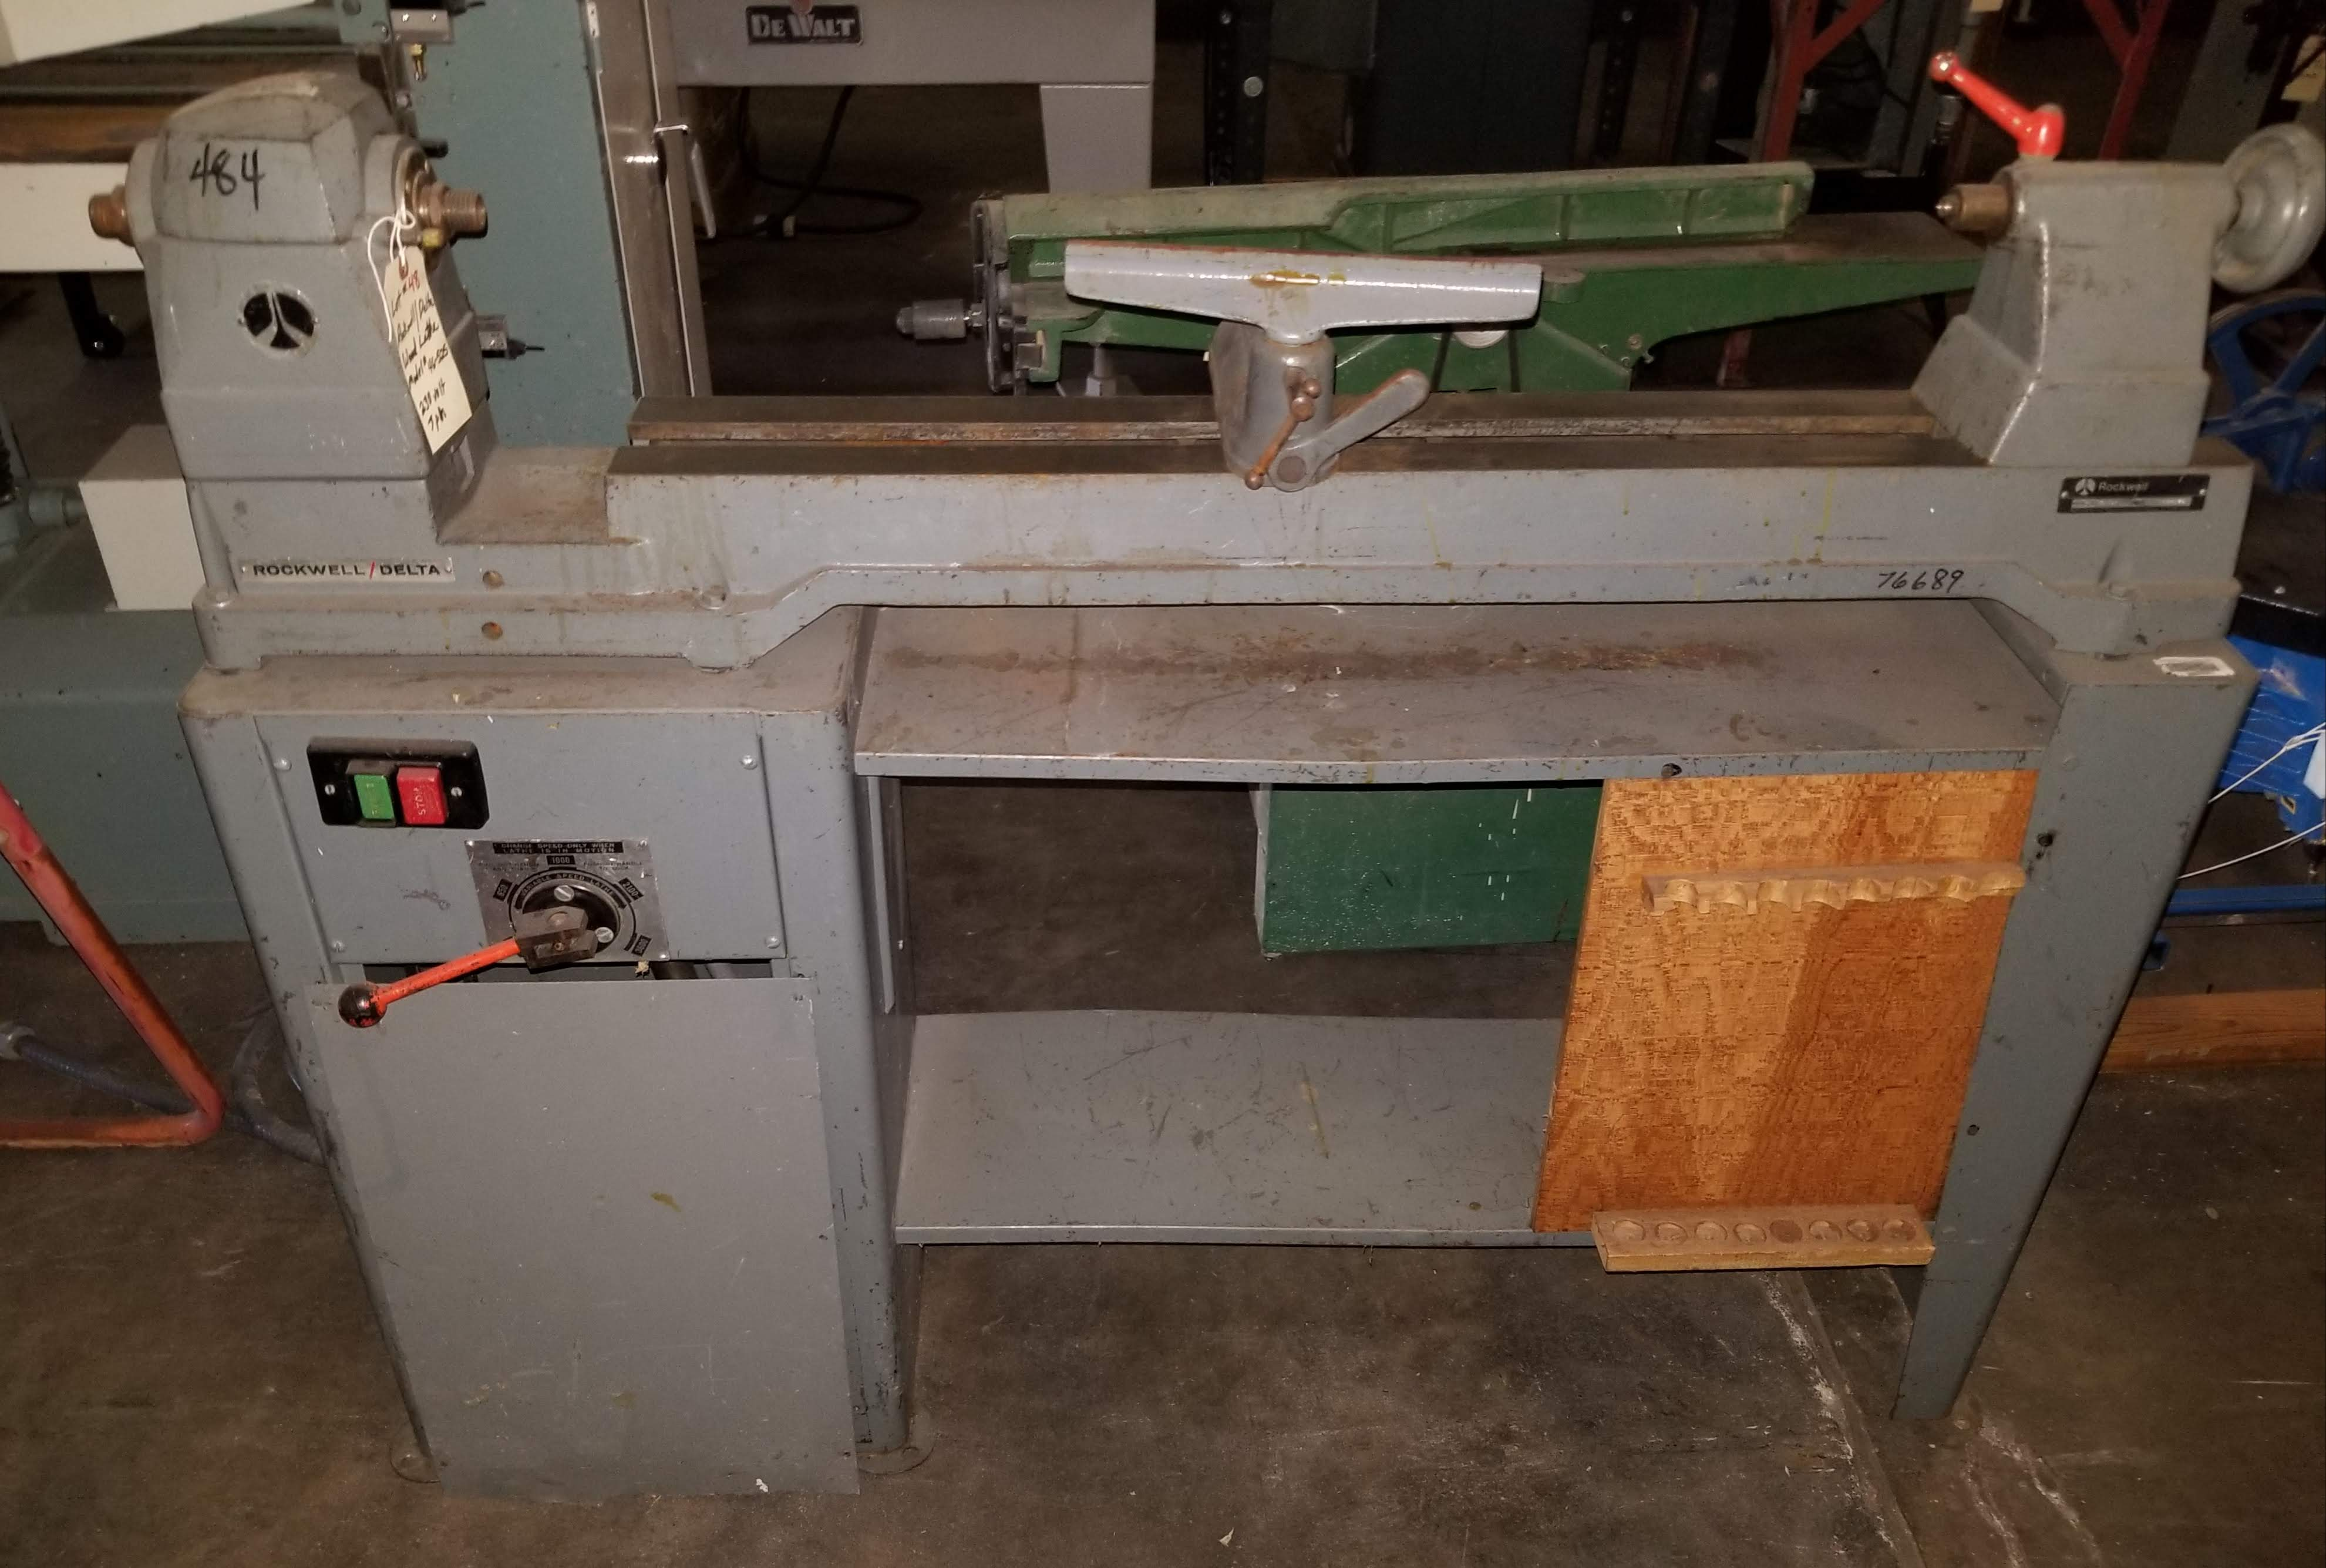 Rockwell Delta Wood Lathe Model # 46-525, 230V 3ph, variable speed gap bed wood lathe in very good